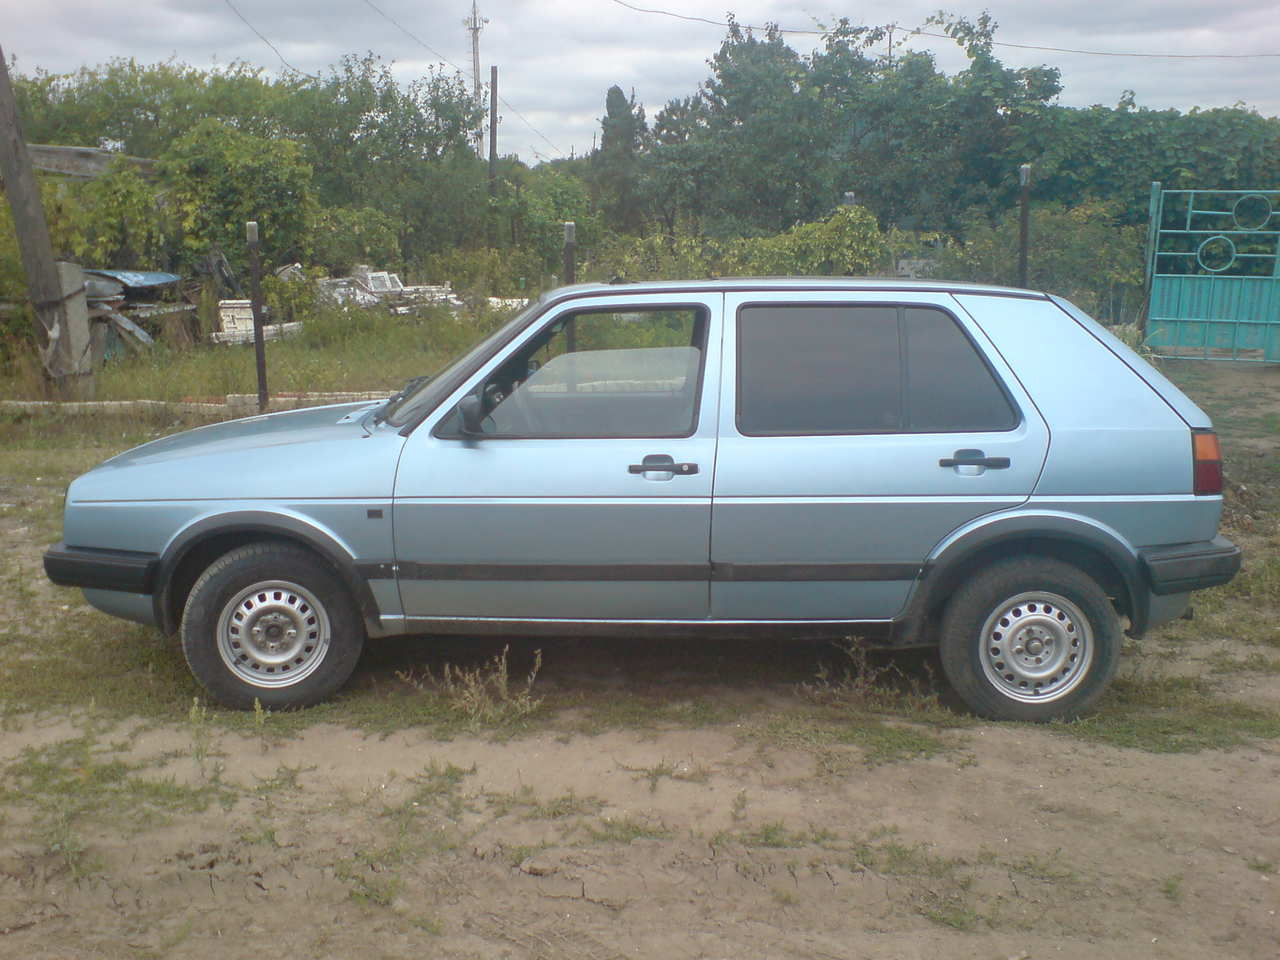 1989 volkswagen golf pictures 1 6l gasoline ff manual for sale rh cars directory net manual golf 1989 1989 Golf Conversions